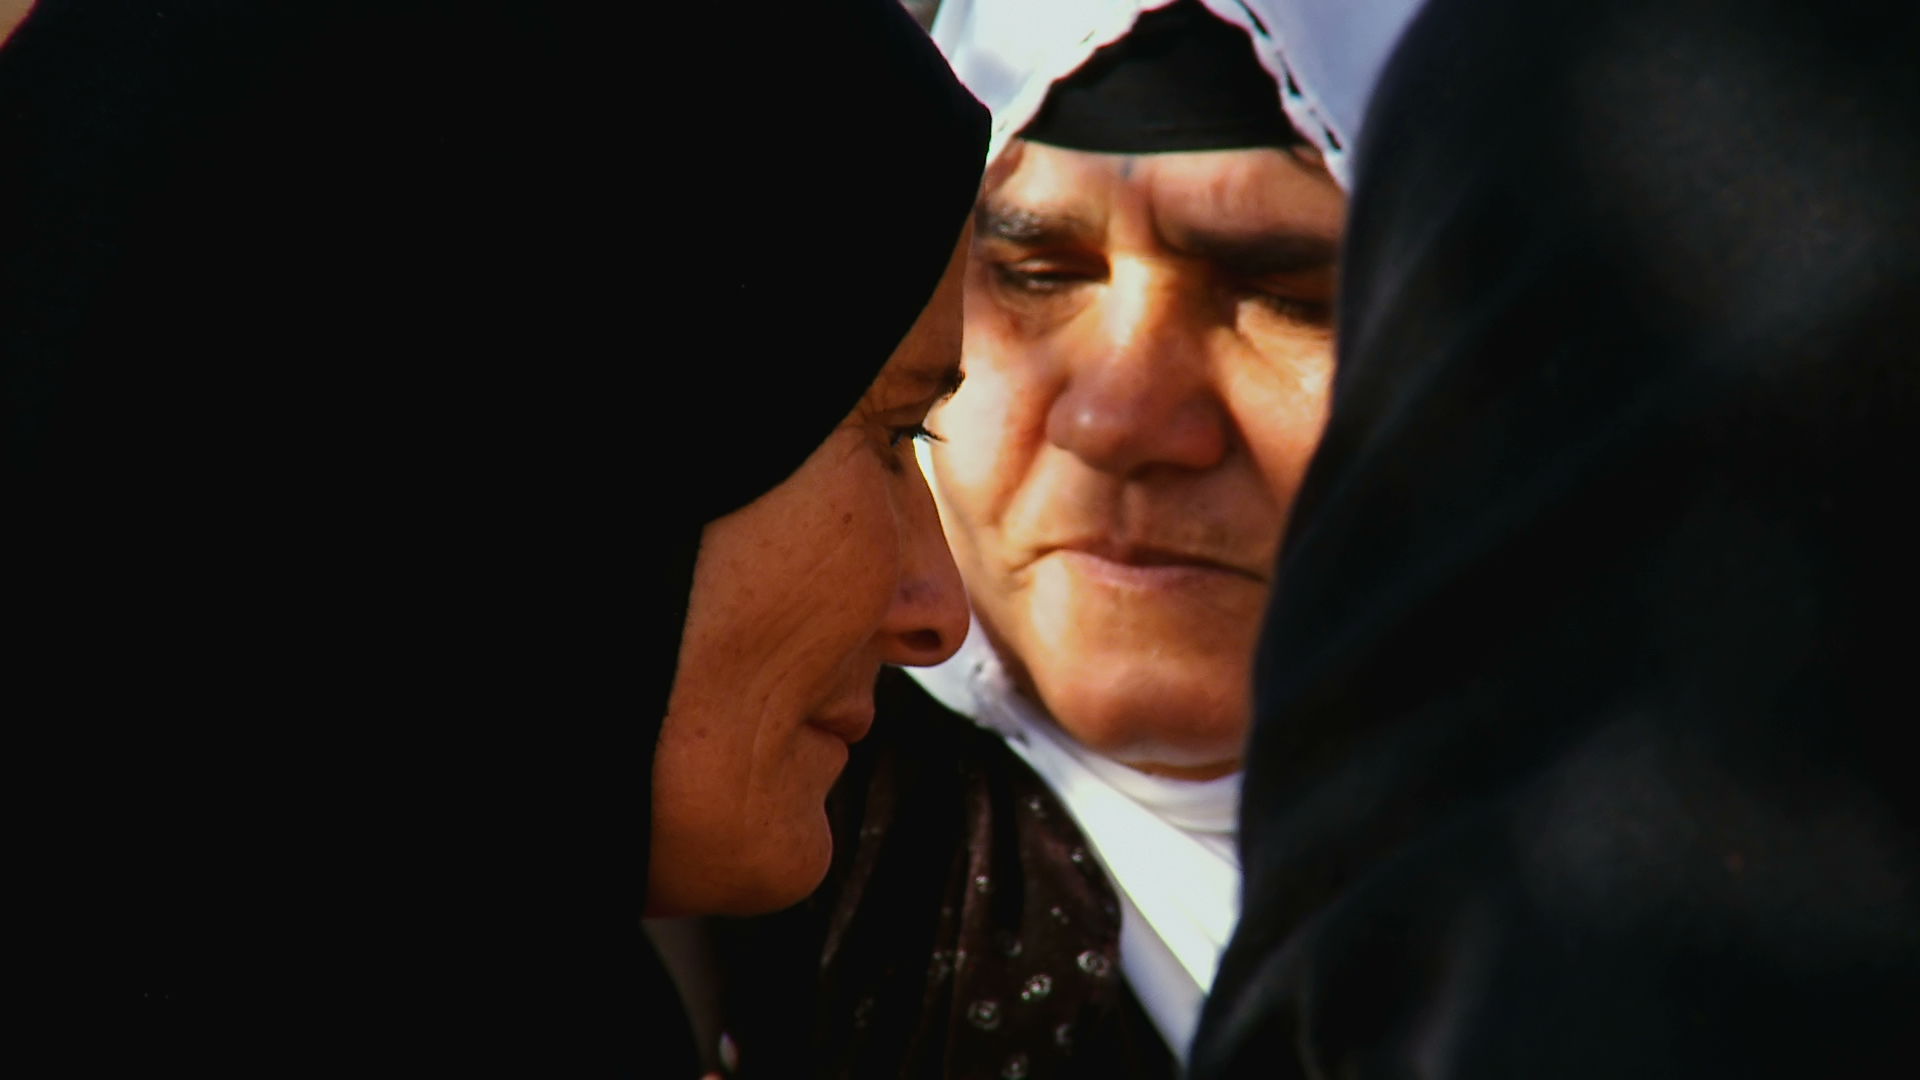 After the Third Anfal in 1988, ASMAR MOHAMMED JABAR and many women from Mahabaram village had to survive without their men who had been executed by the Iraqi army. She returned to the village to rebuild her house, brick by brick, and to try to come to terms with her grief.